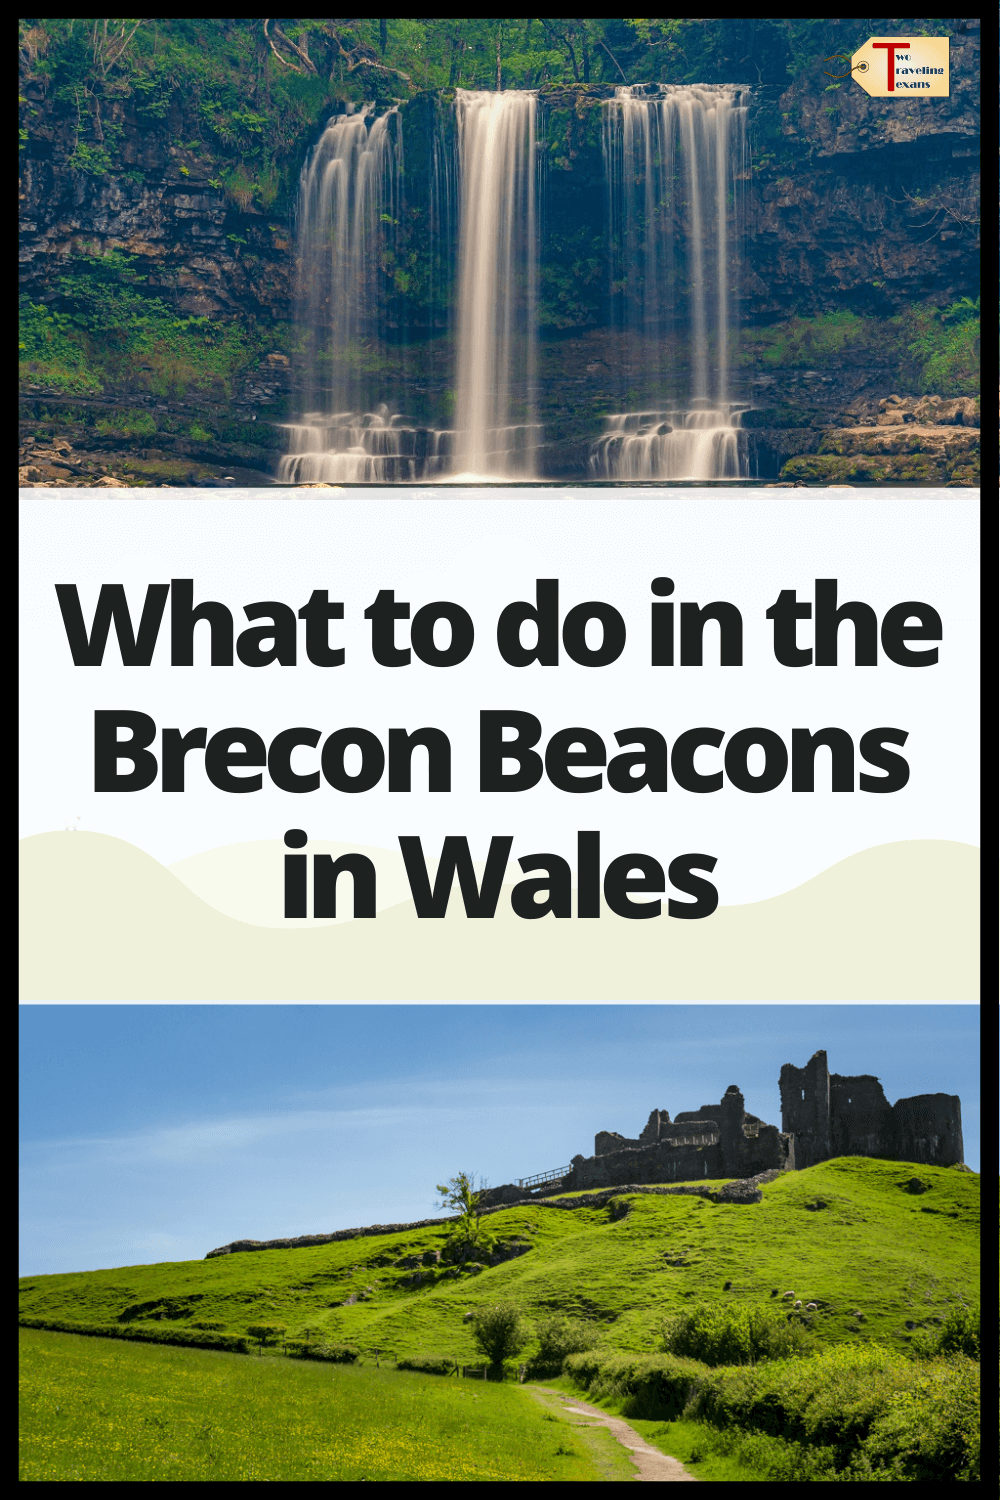 waterfall, then text what to do in the Brecon Beacons in Wales then carreg cennen castle